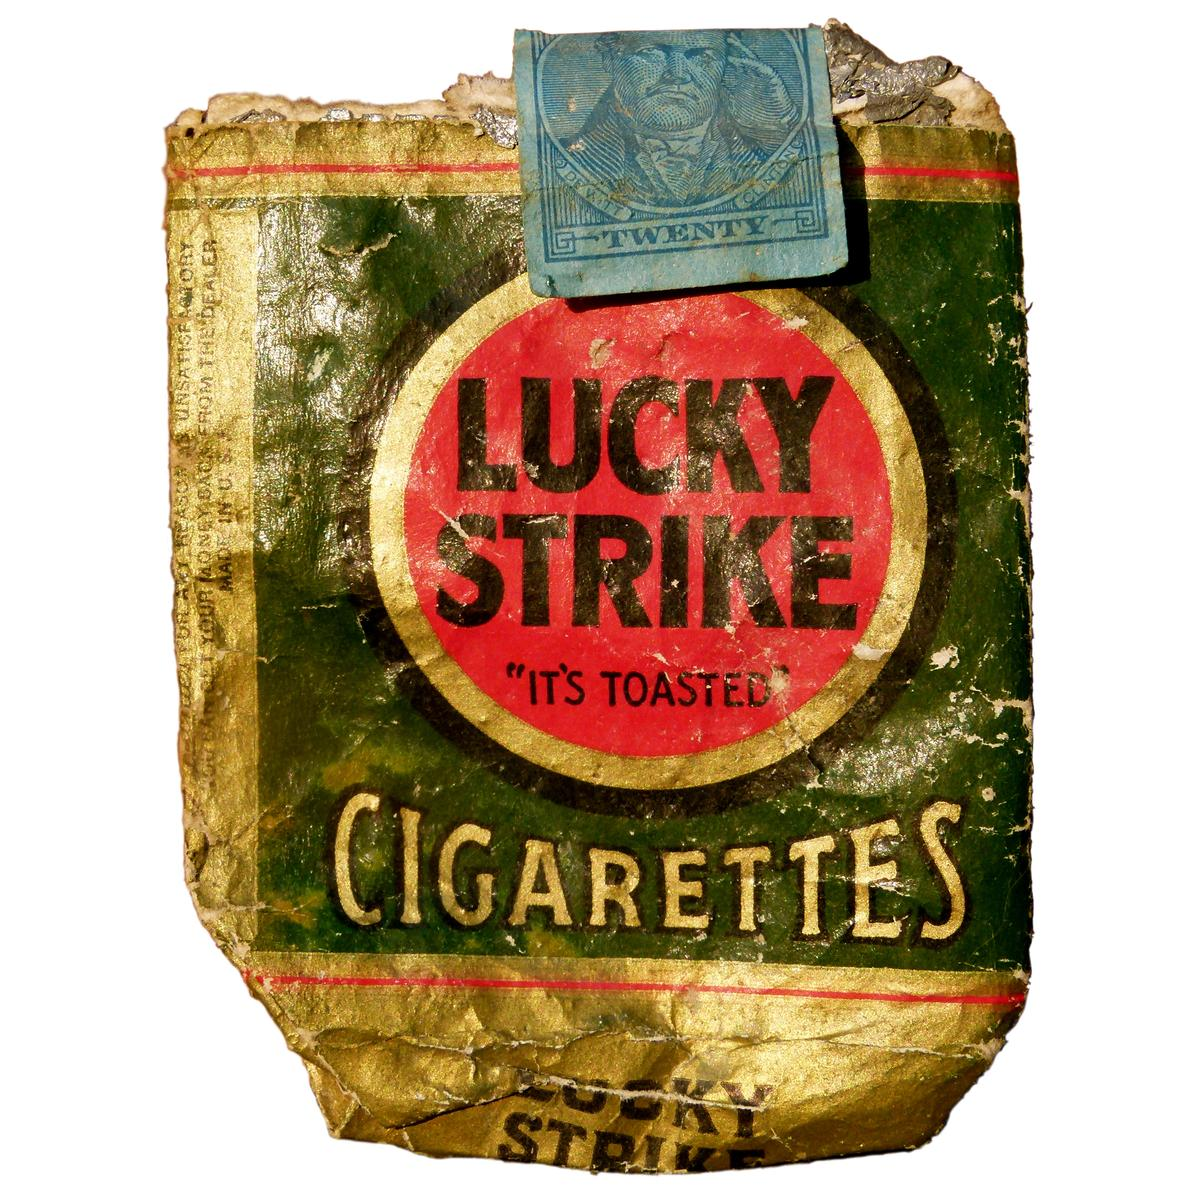 Lucky Strike Cigarettes - Brad Beyer